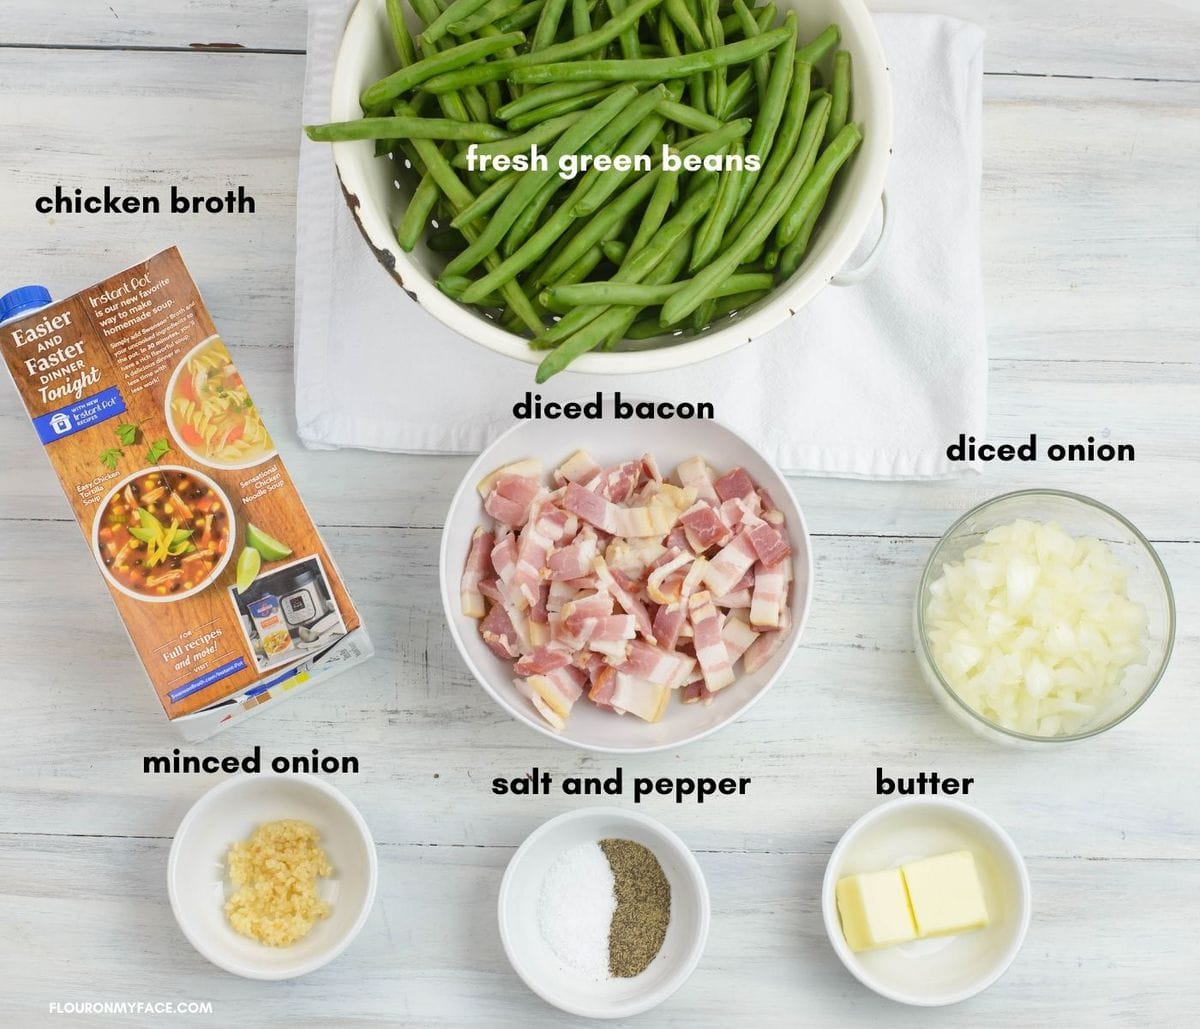 Green beans with bacon ingredients in individual bowls.